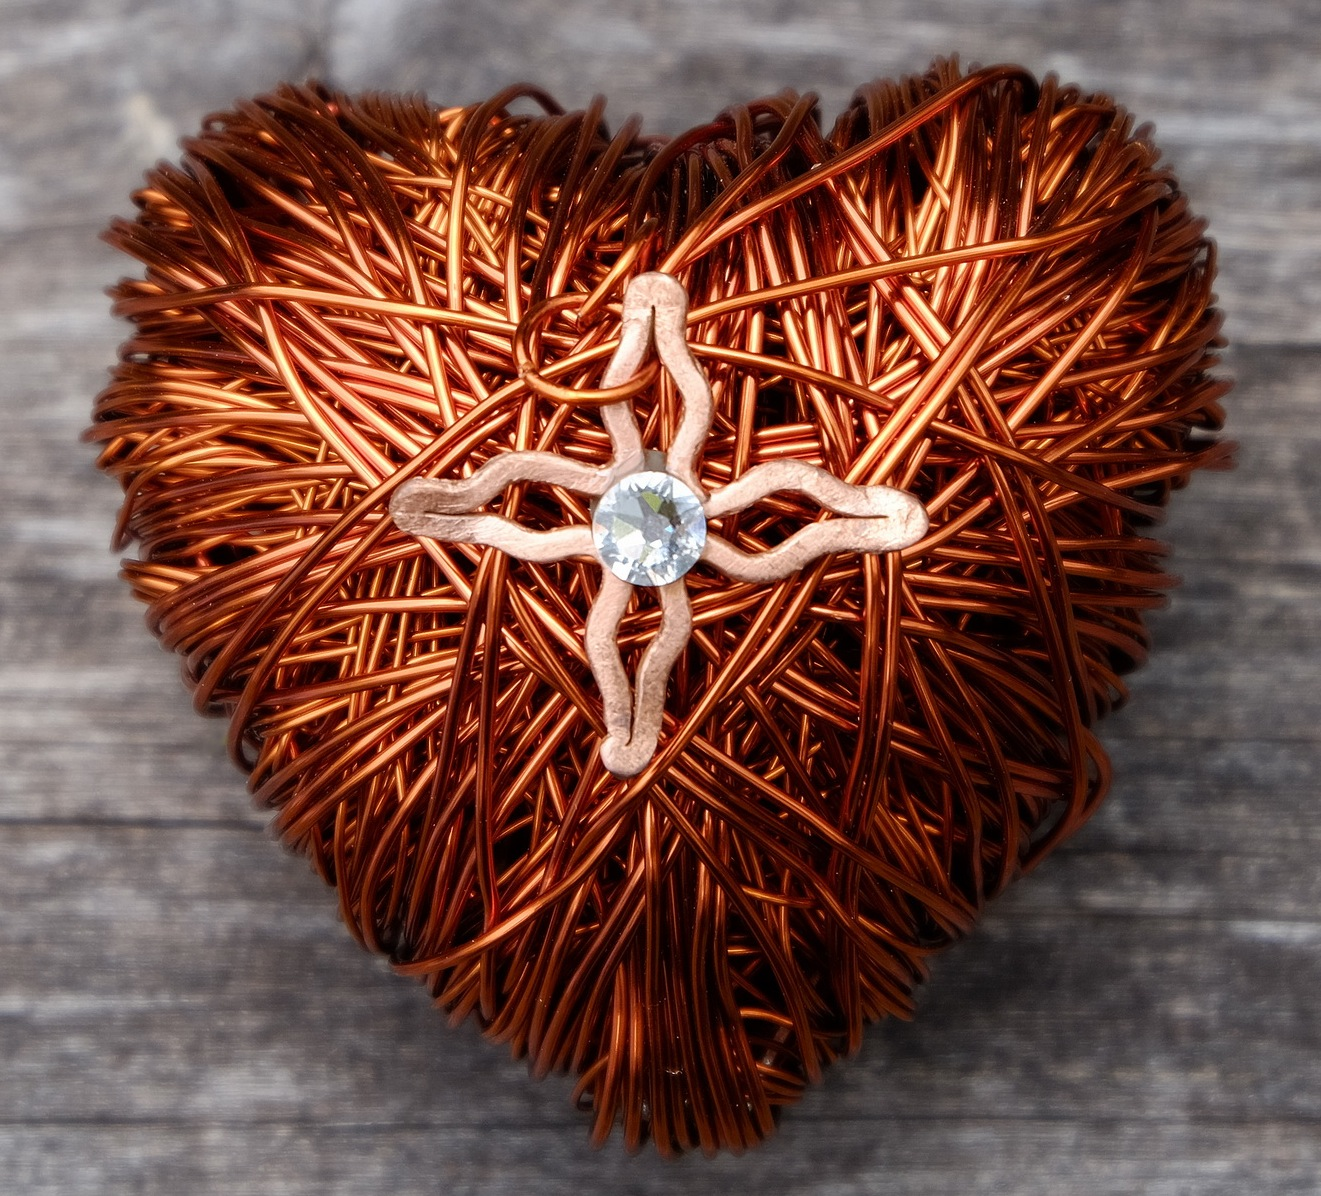 Nongnit's Treasures: Copper Wired Art